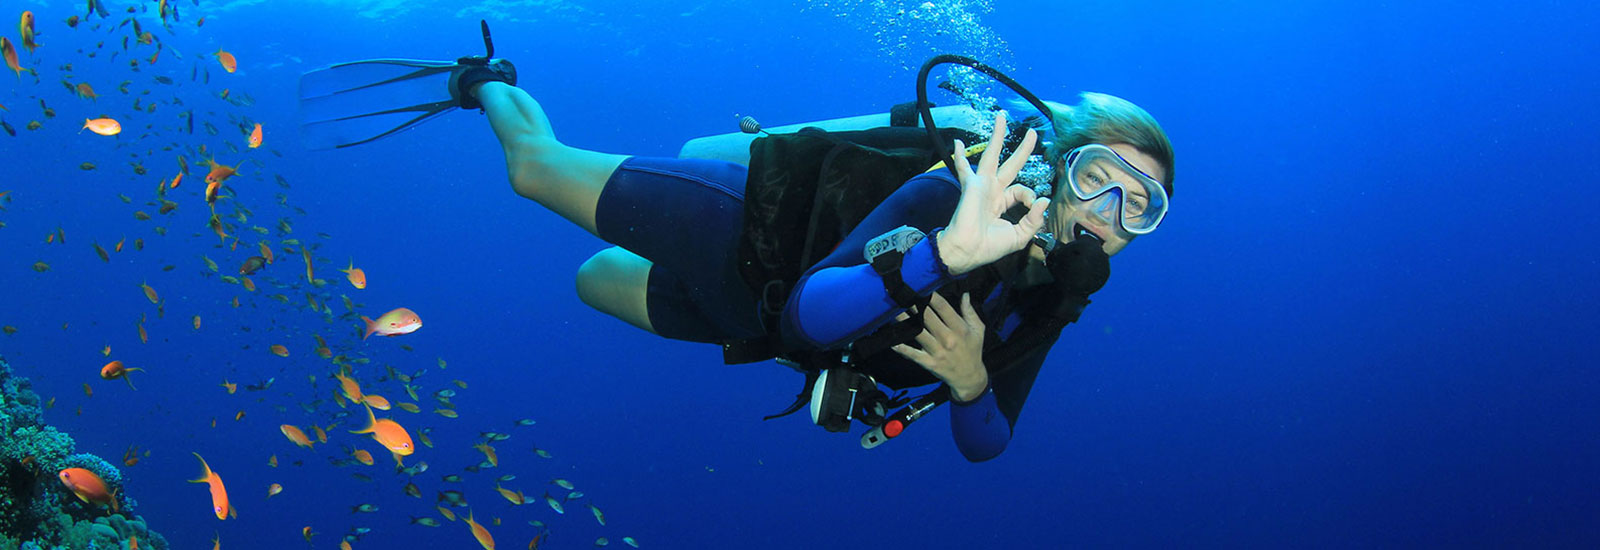 Have a Snorkeling in Los Arcos of Cabo San Lucas